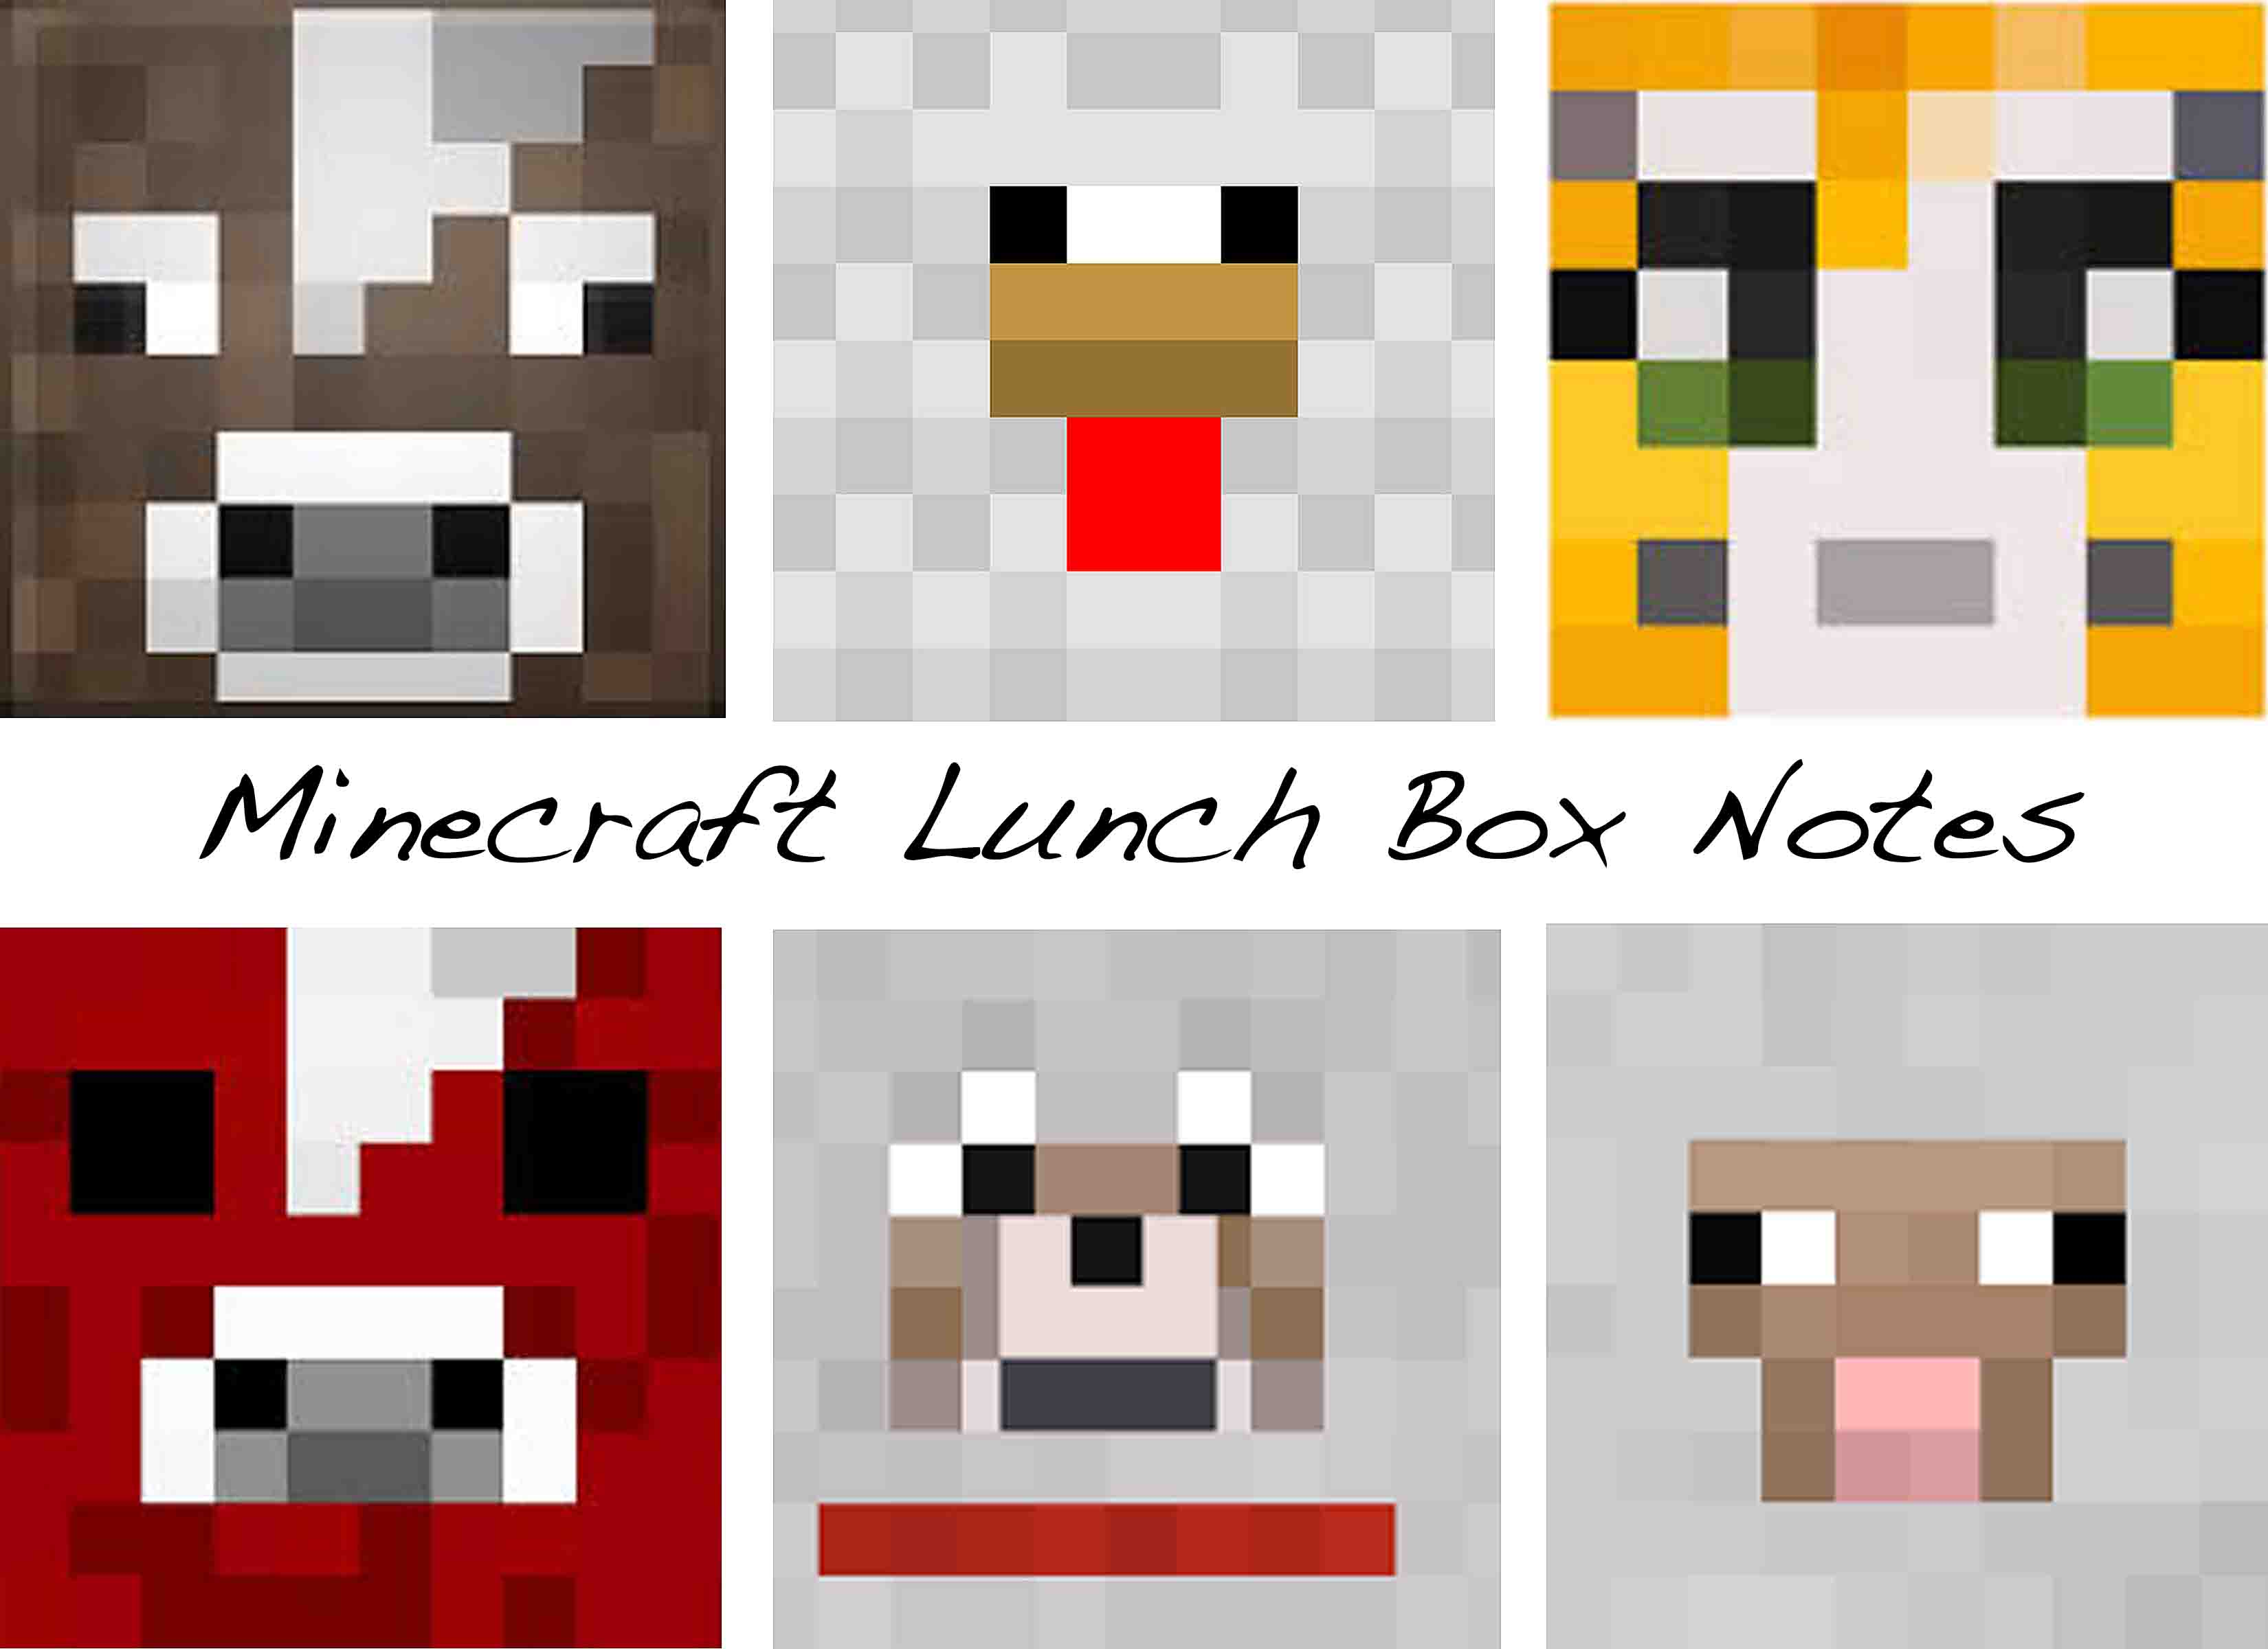 Minecraft lunch box notes